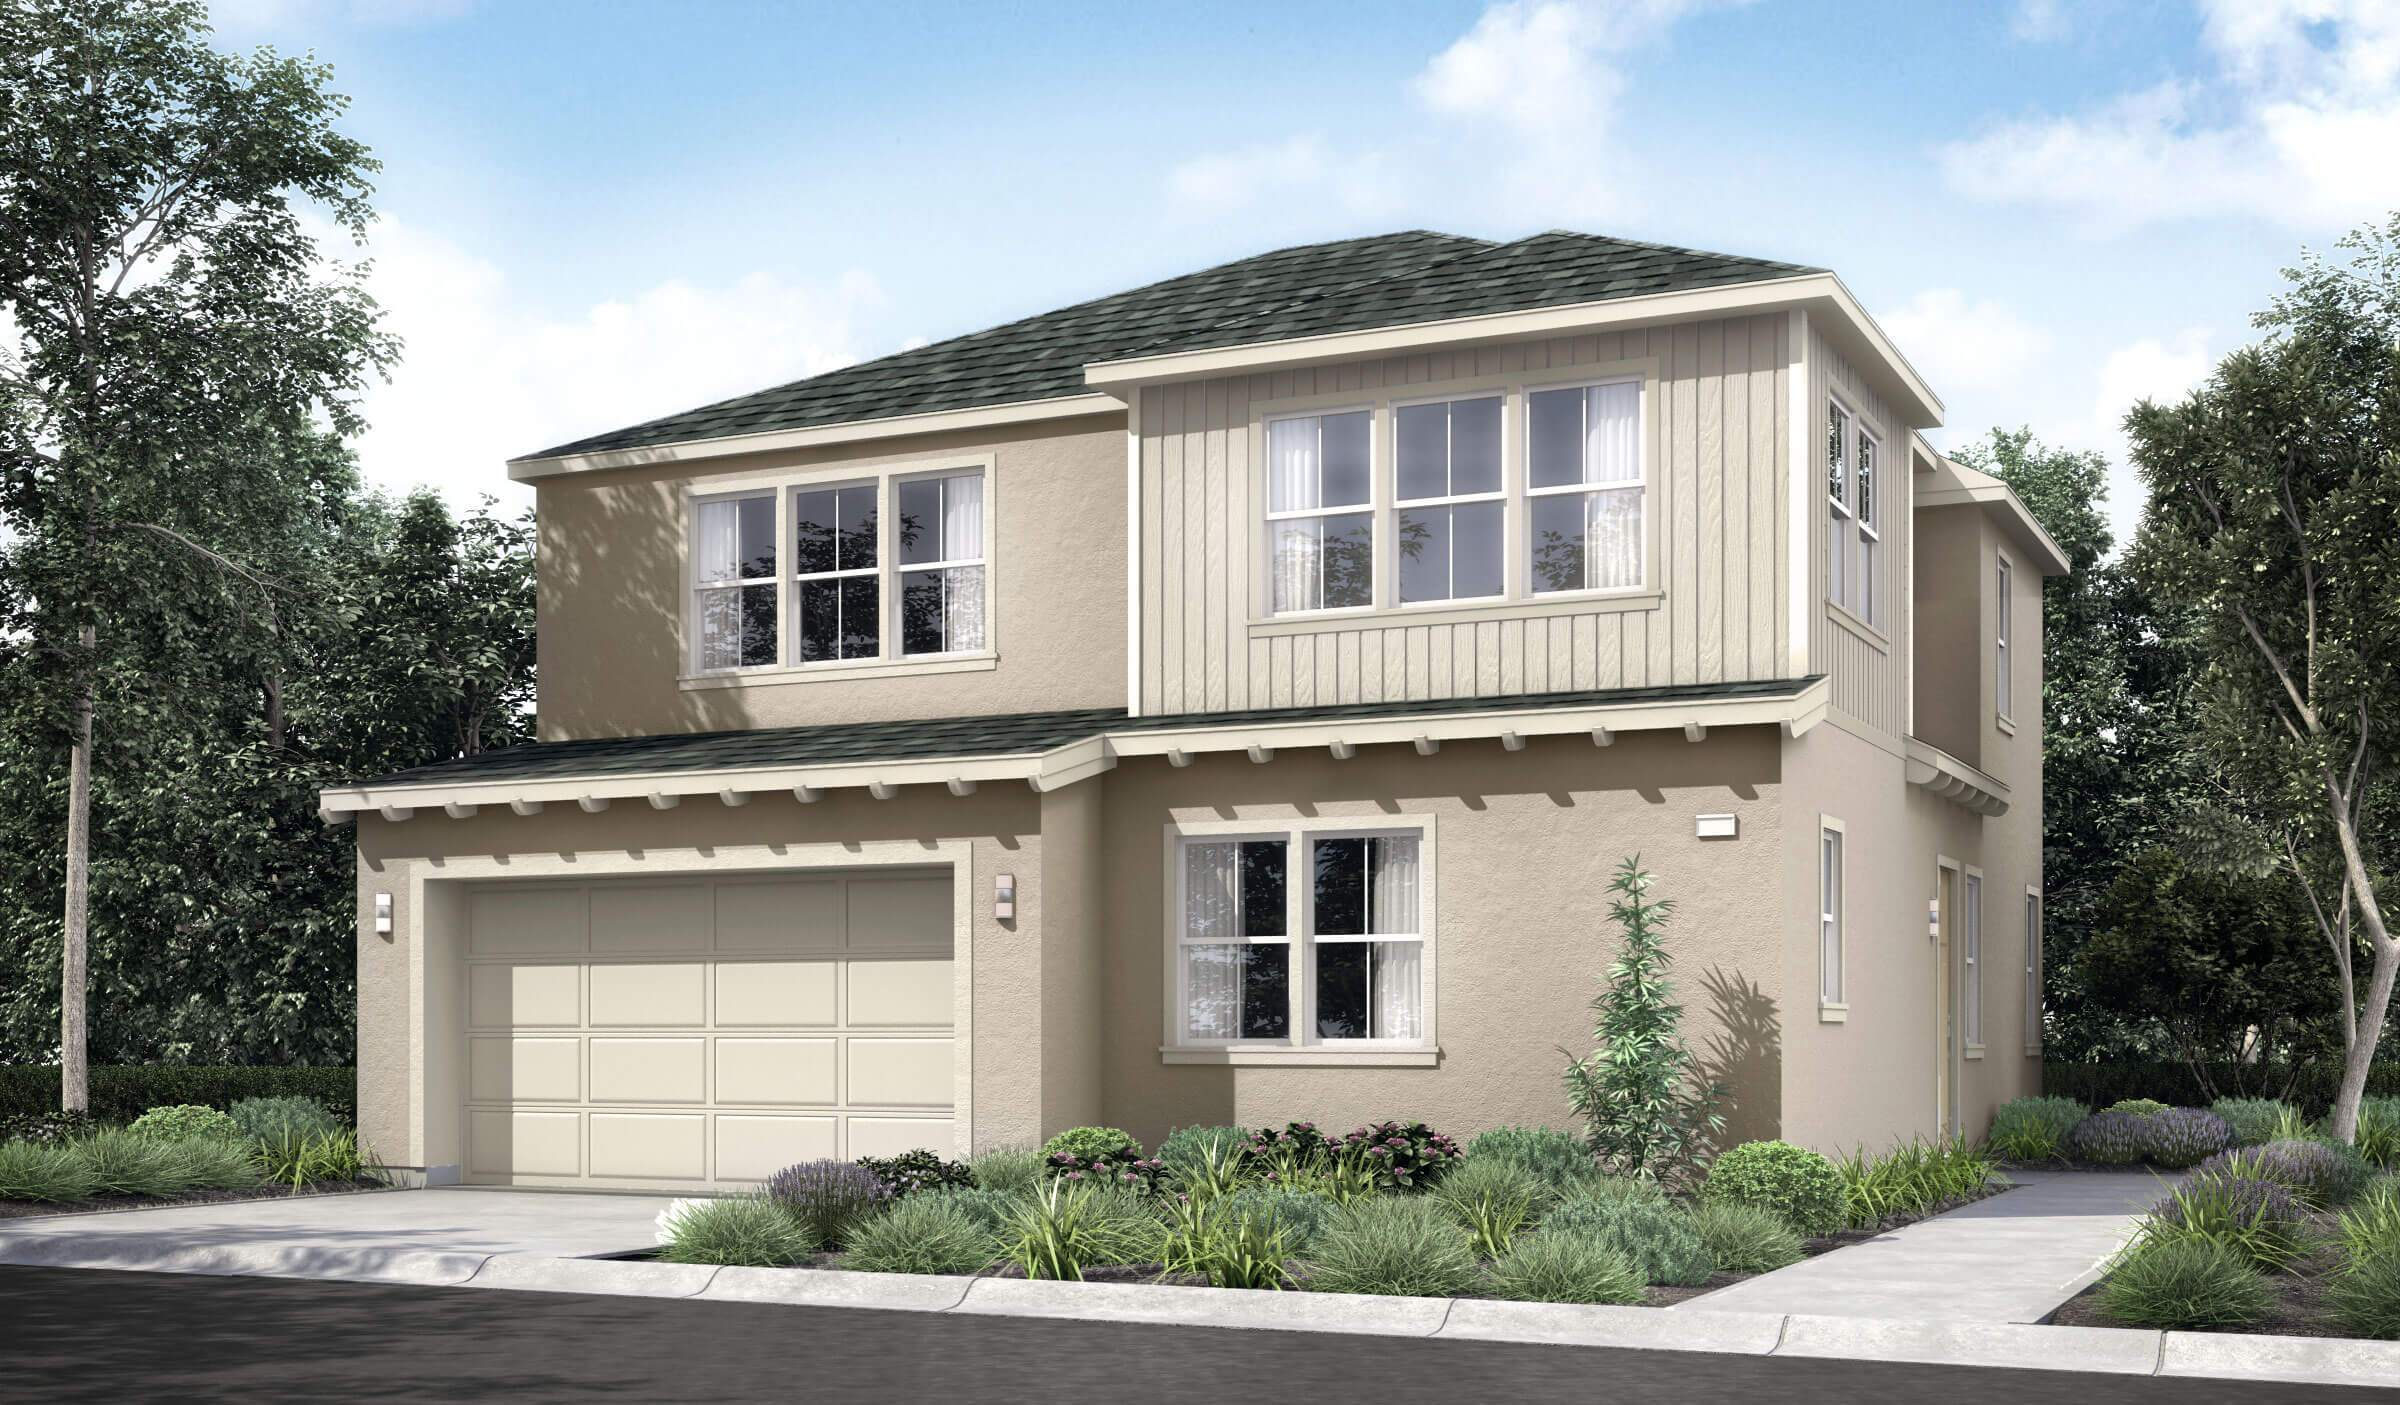 Single Family for Sale at Bayshores - The Isles Residence 1 37701 Spring Tide Road Newark, California 94560 United States